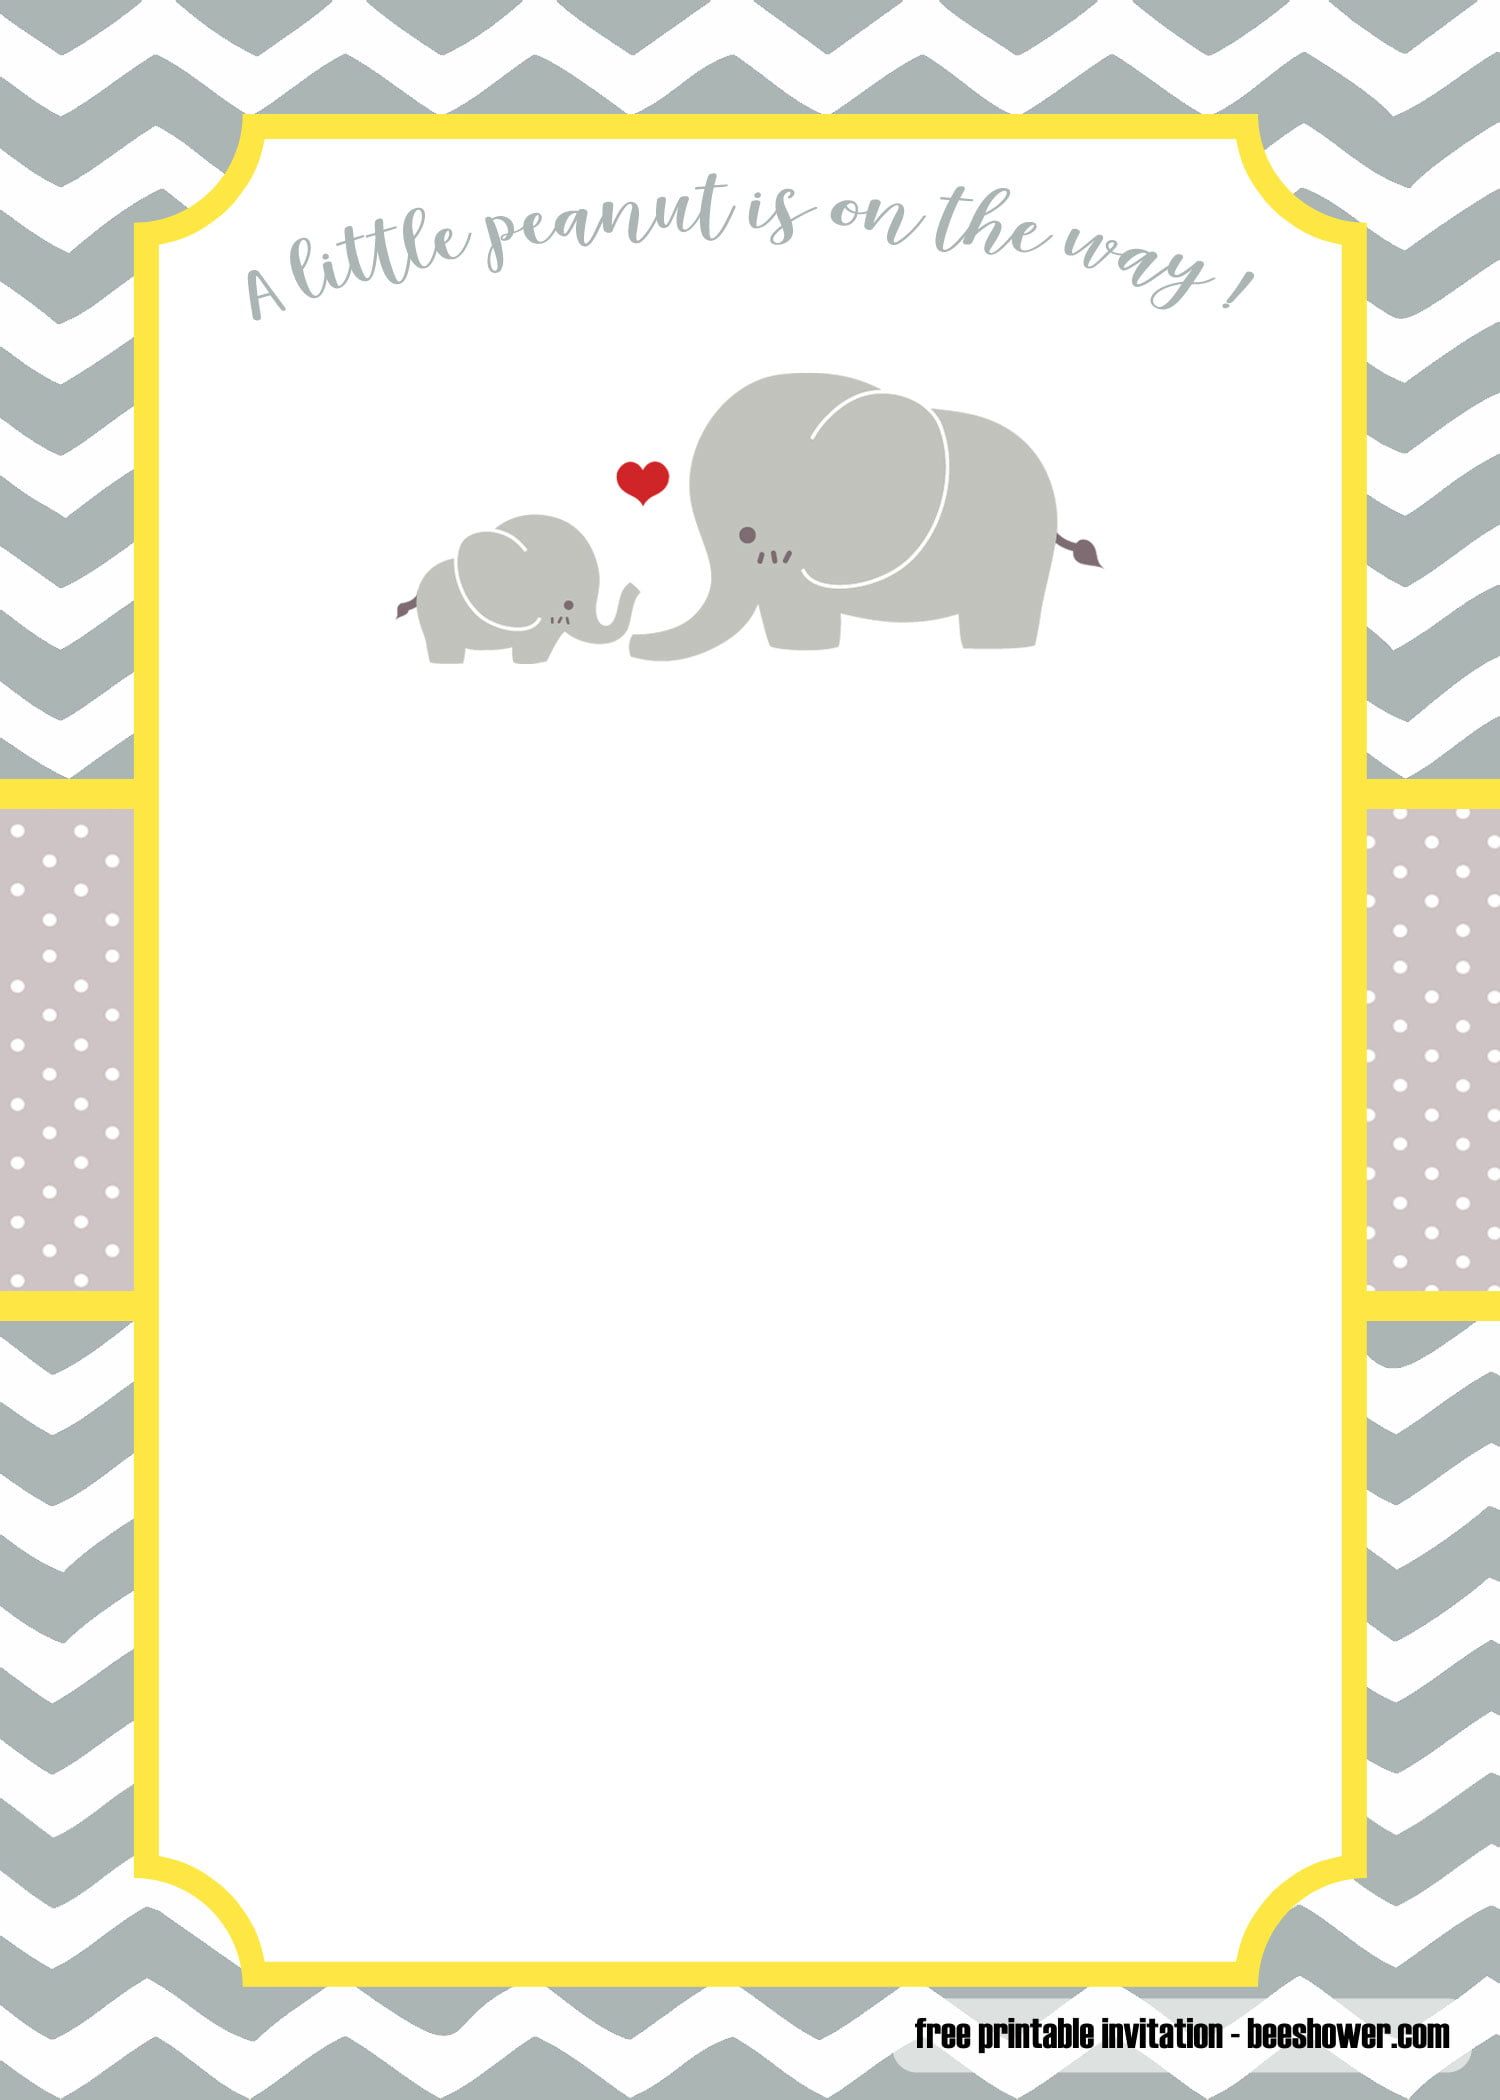 image regarding Free Printable Blank Baby Shower Invitations known as No cost Yellow and grey Minimal Peanut boy or girl shower invites